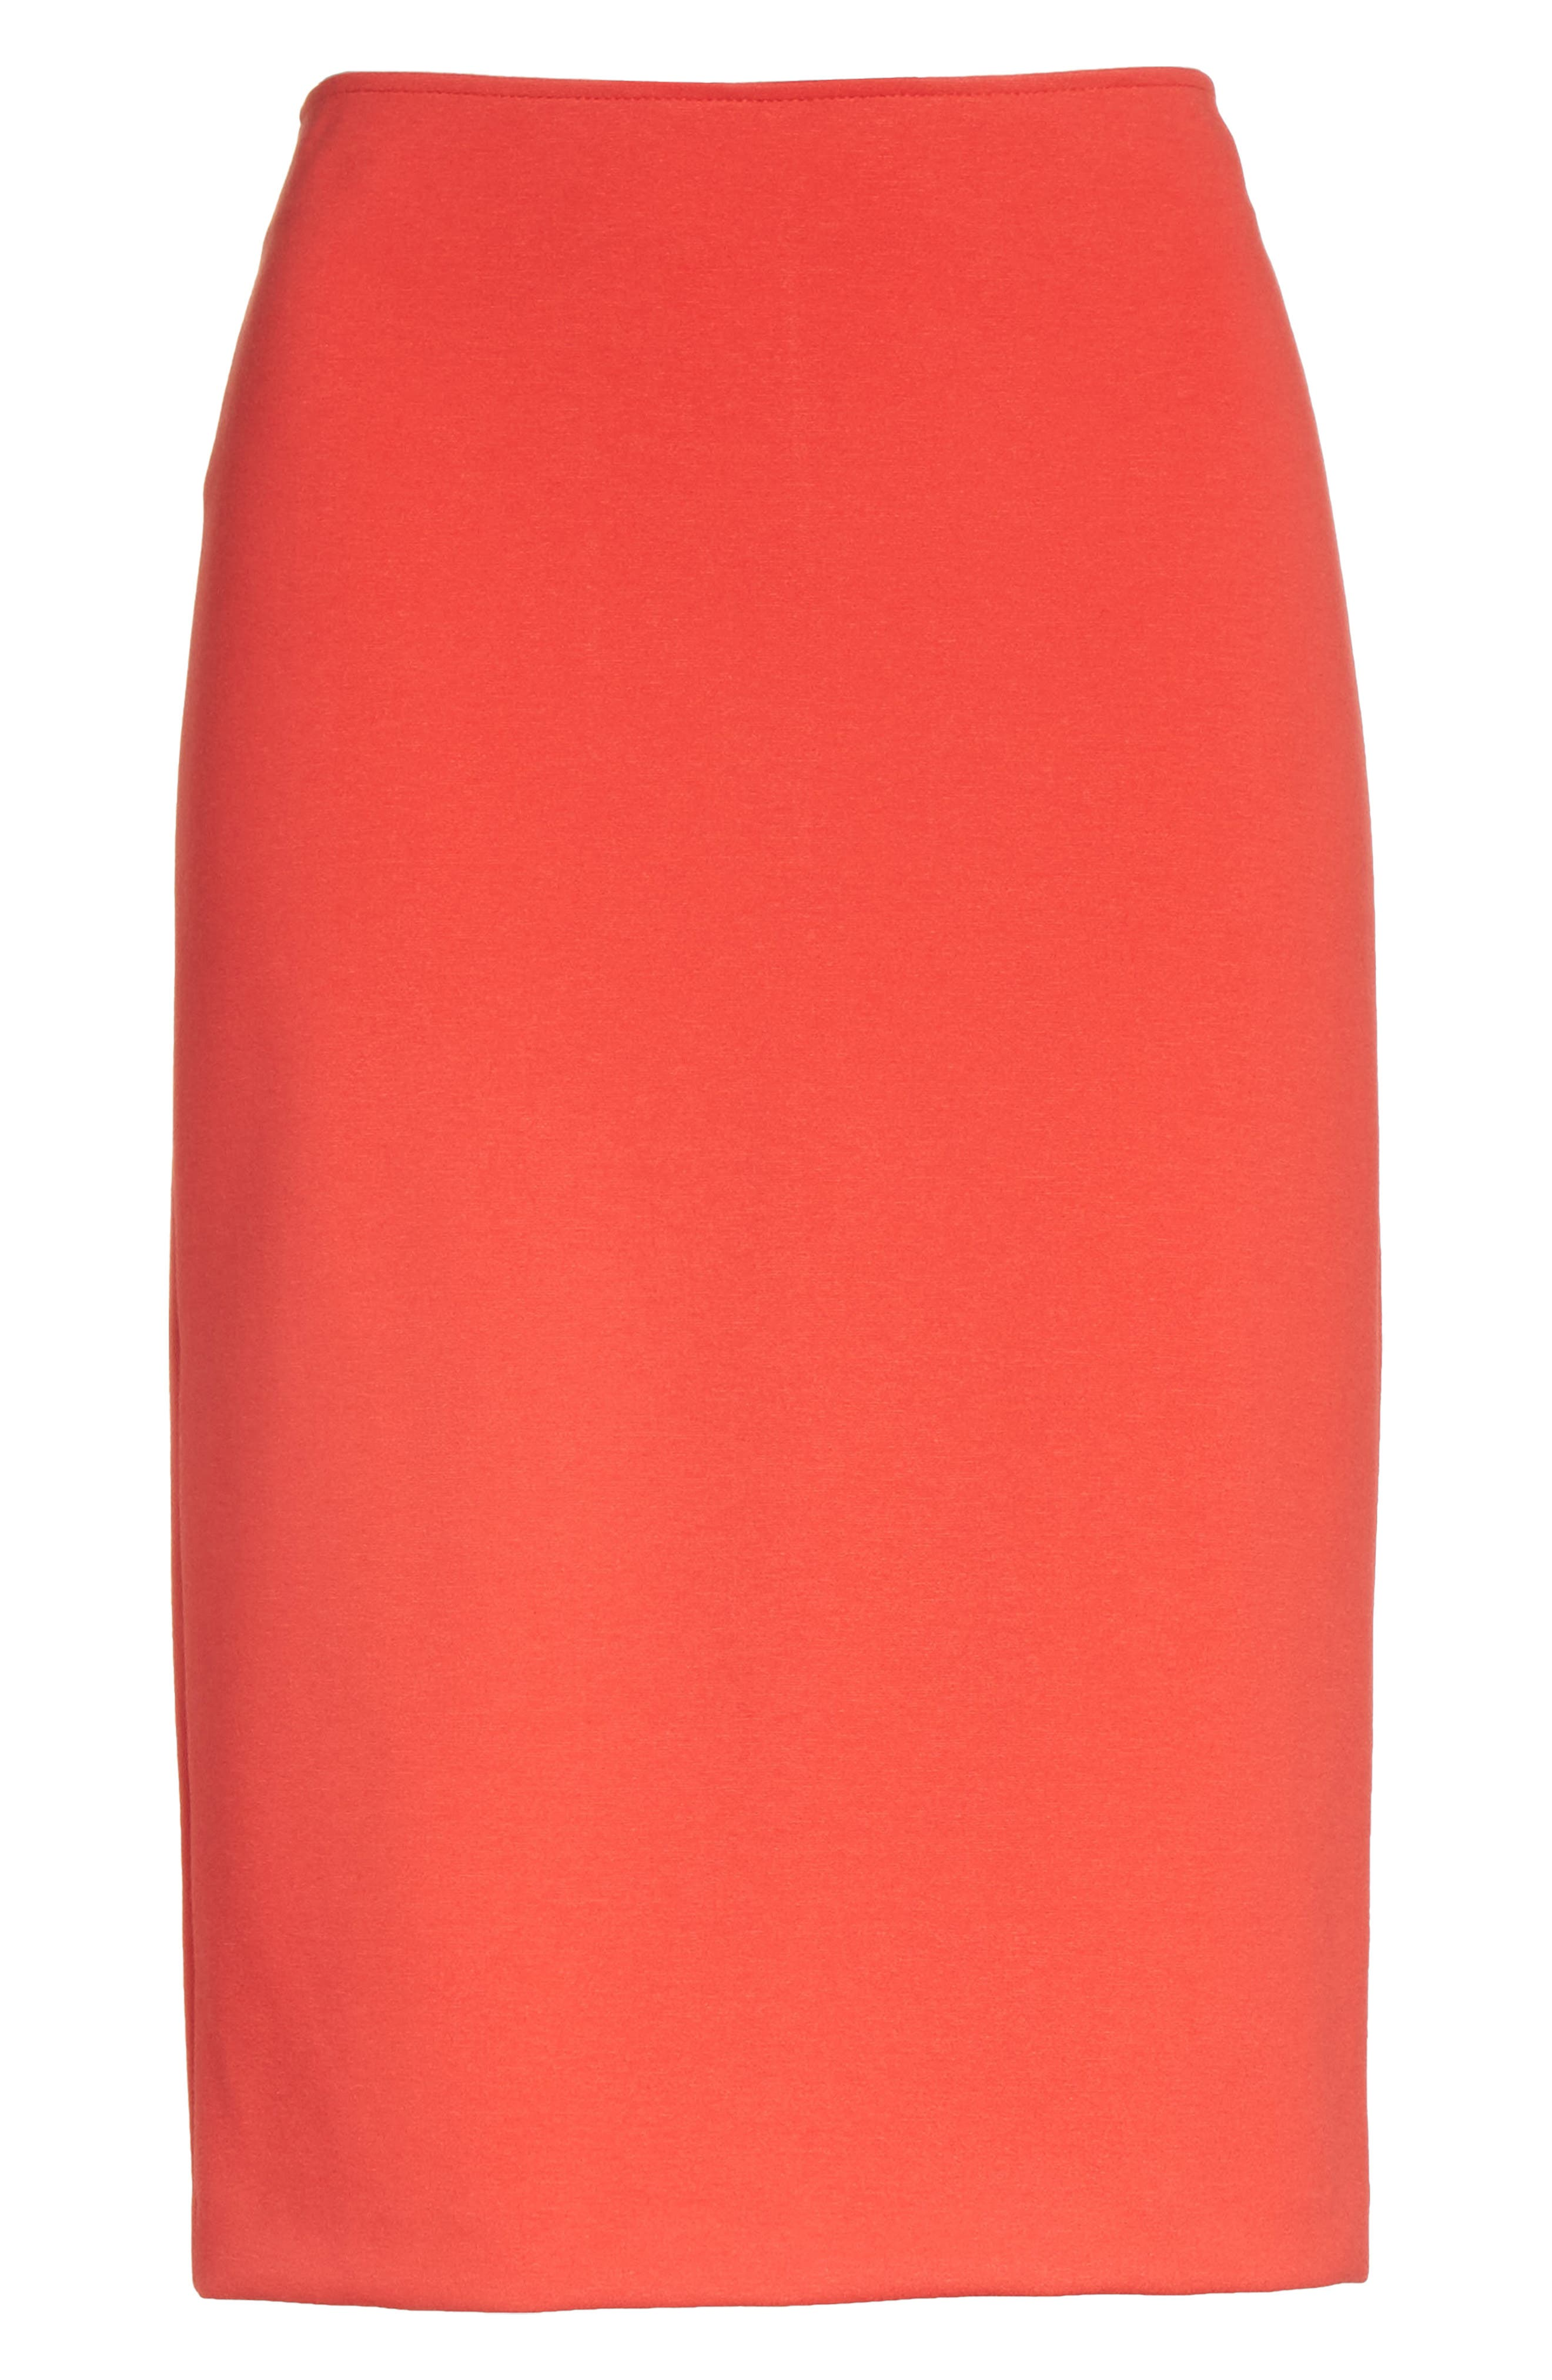 Milano Jersey Pencil Skirt,                             Alternate thumbnail 6, color,